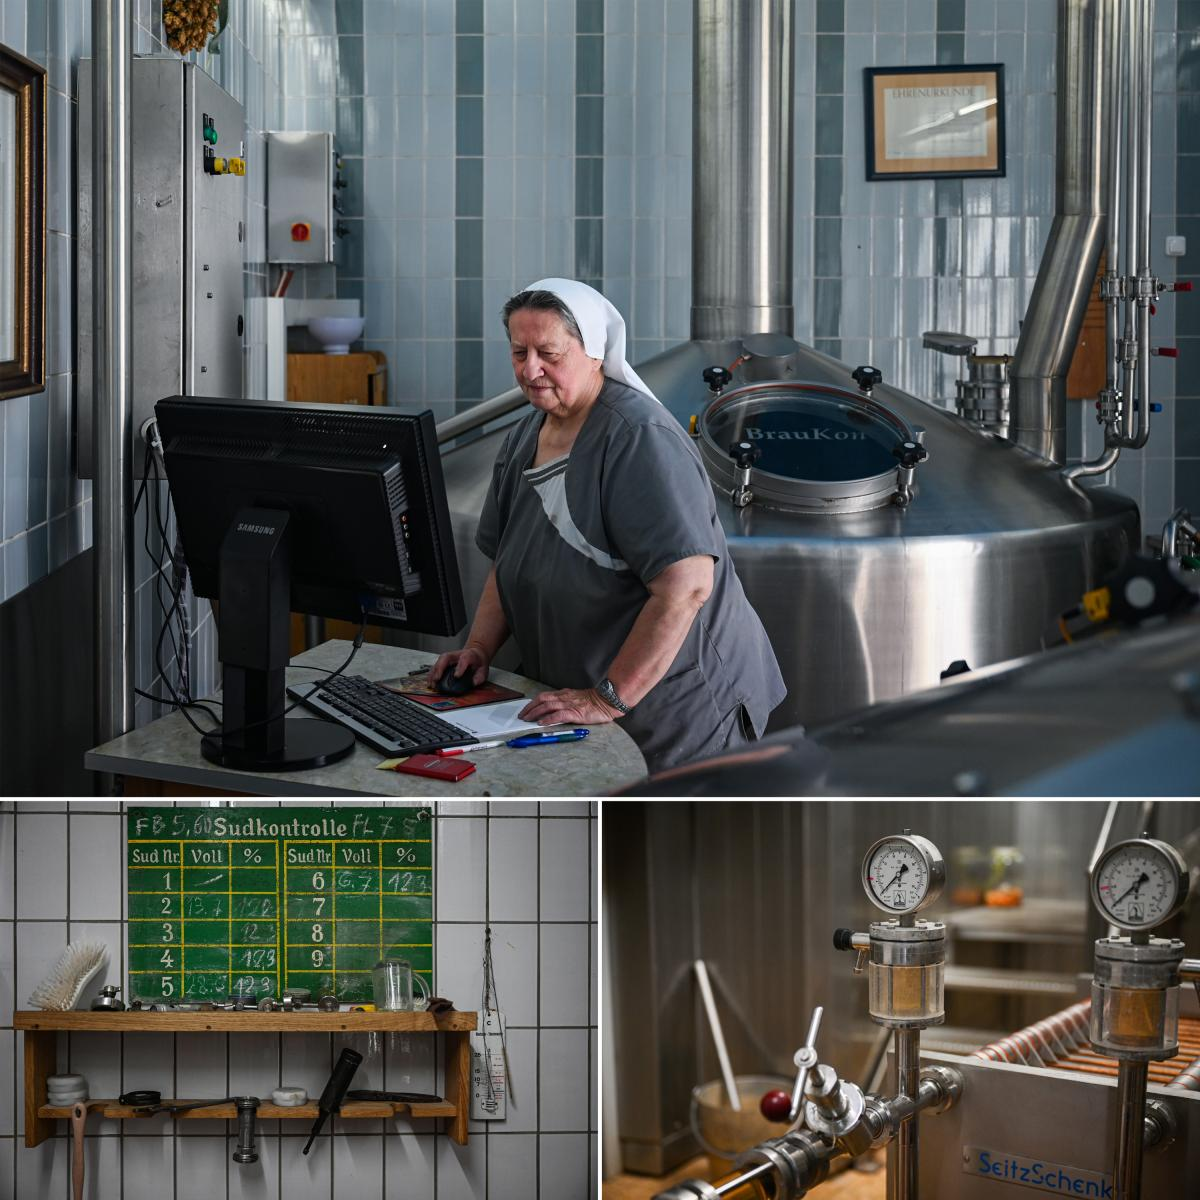 Top: Sister Doris in the brewhouse. Together with one employee the nun runs the small cloister brewery in Mallersdorf. Bottom: Work utensils (left) and pressure gauges in the brewery.